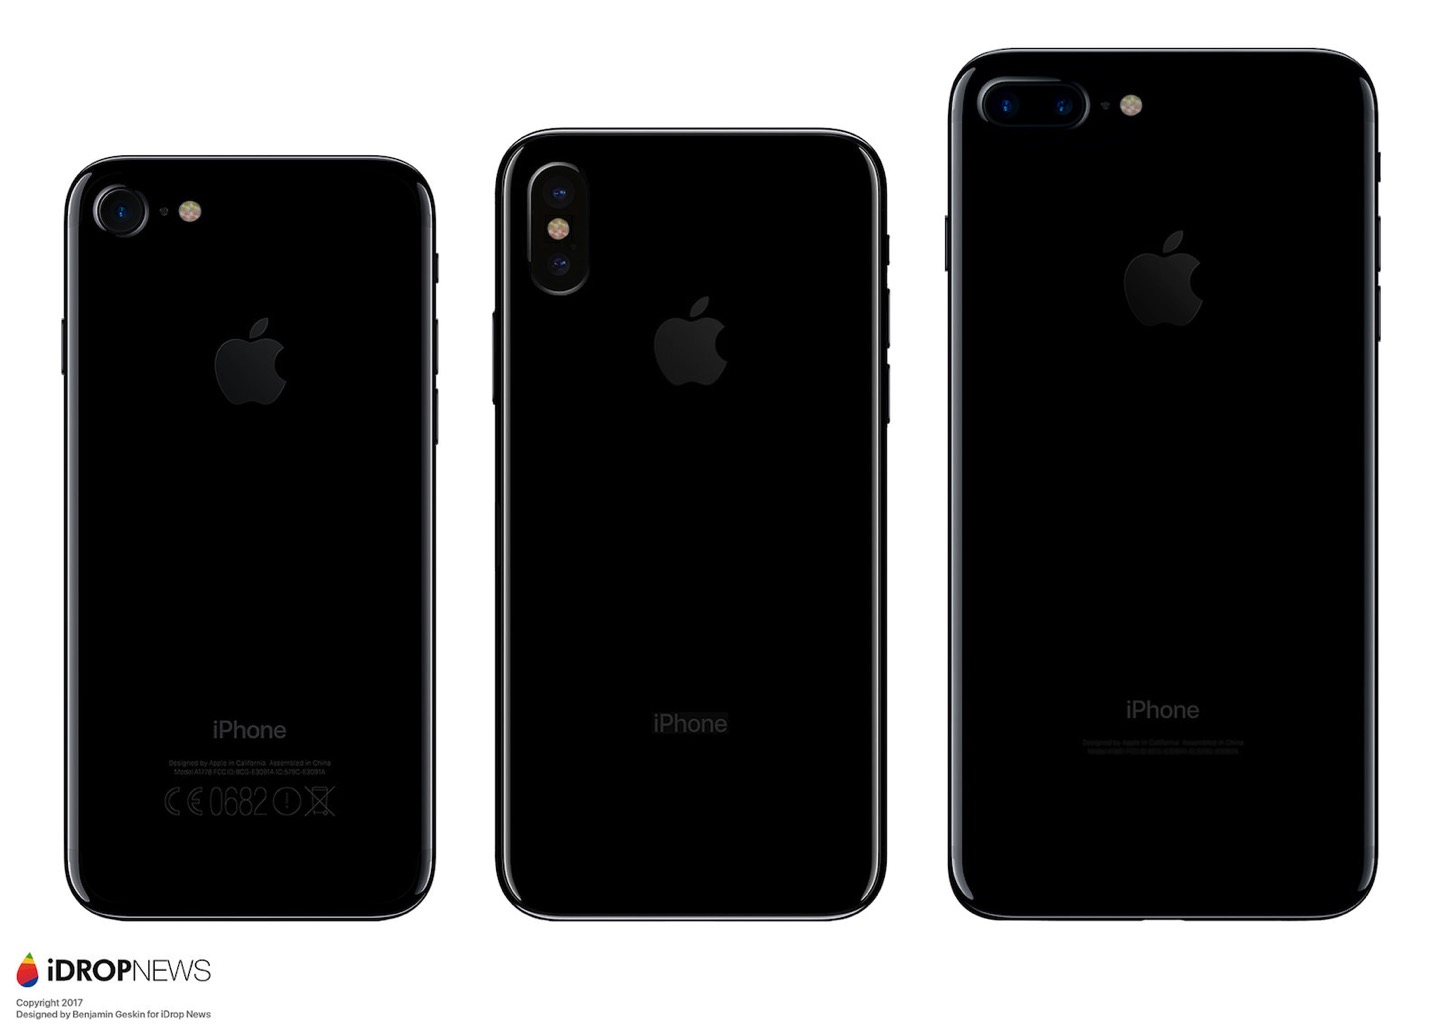 IPhone 8 Size Comparison iDrop News